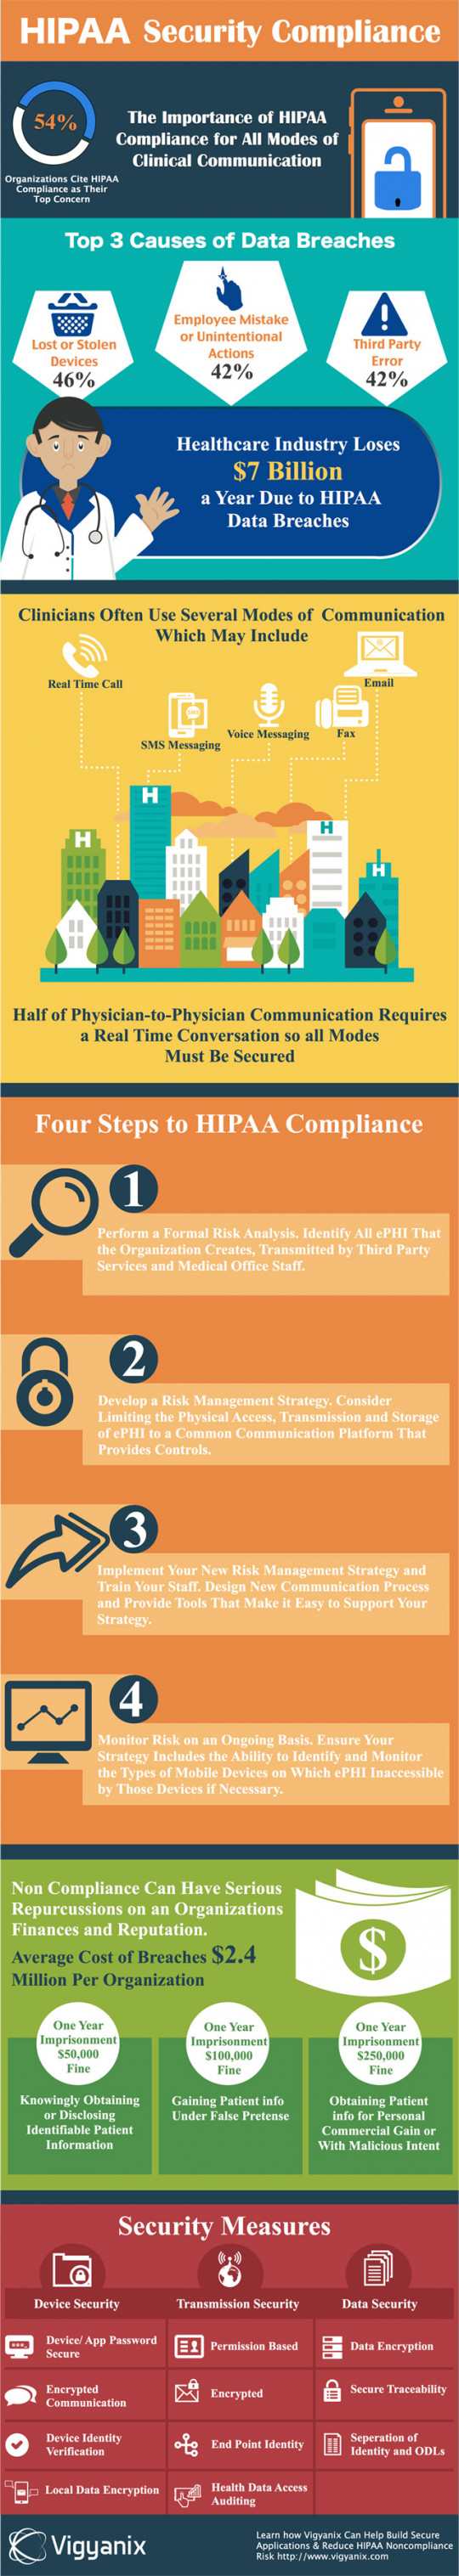 HIPAA security compliance